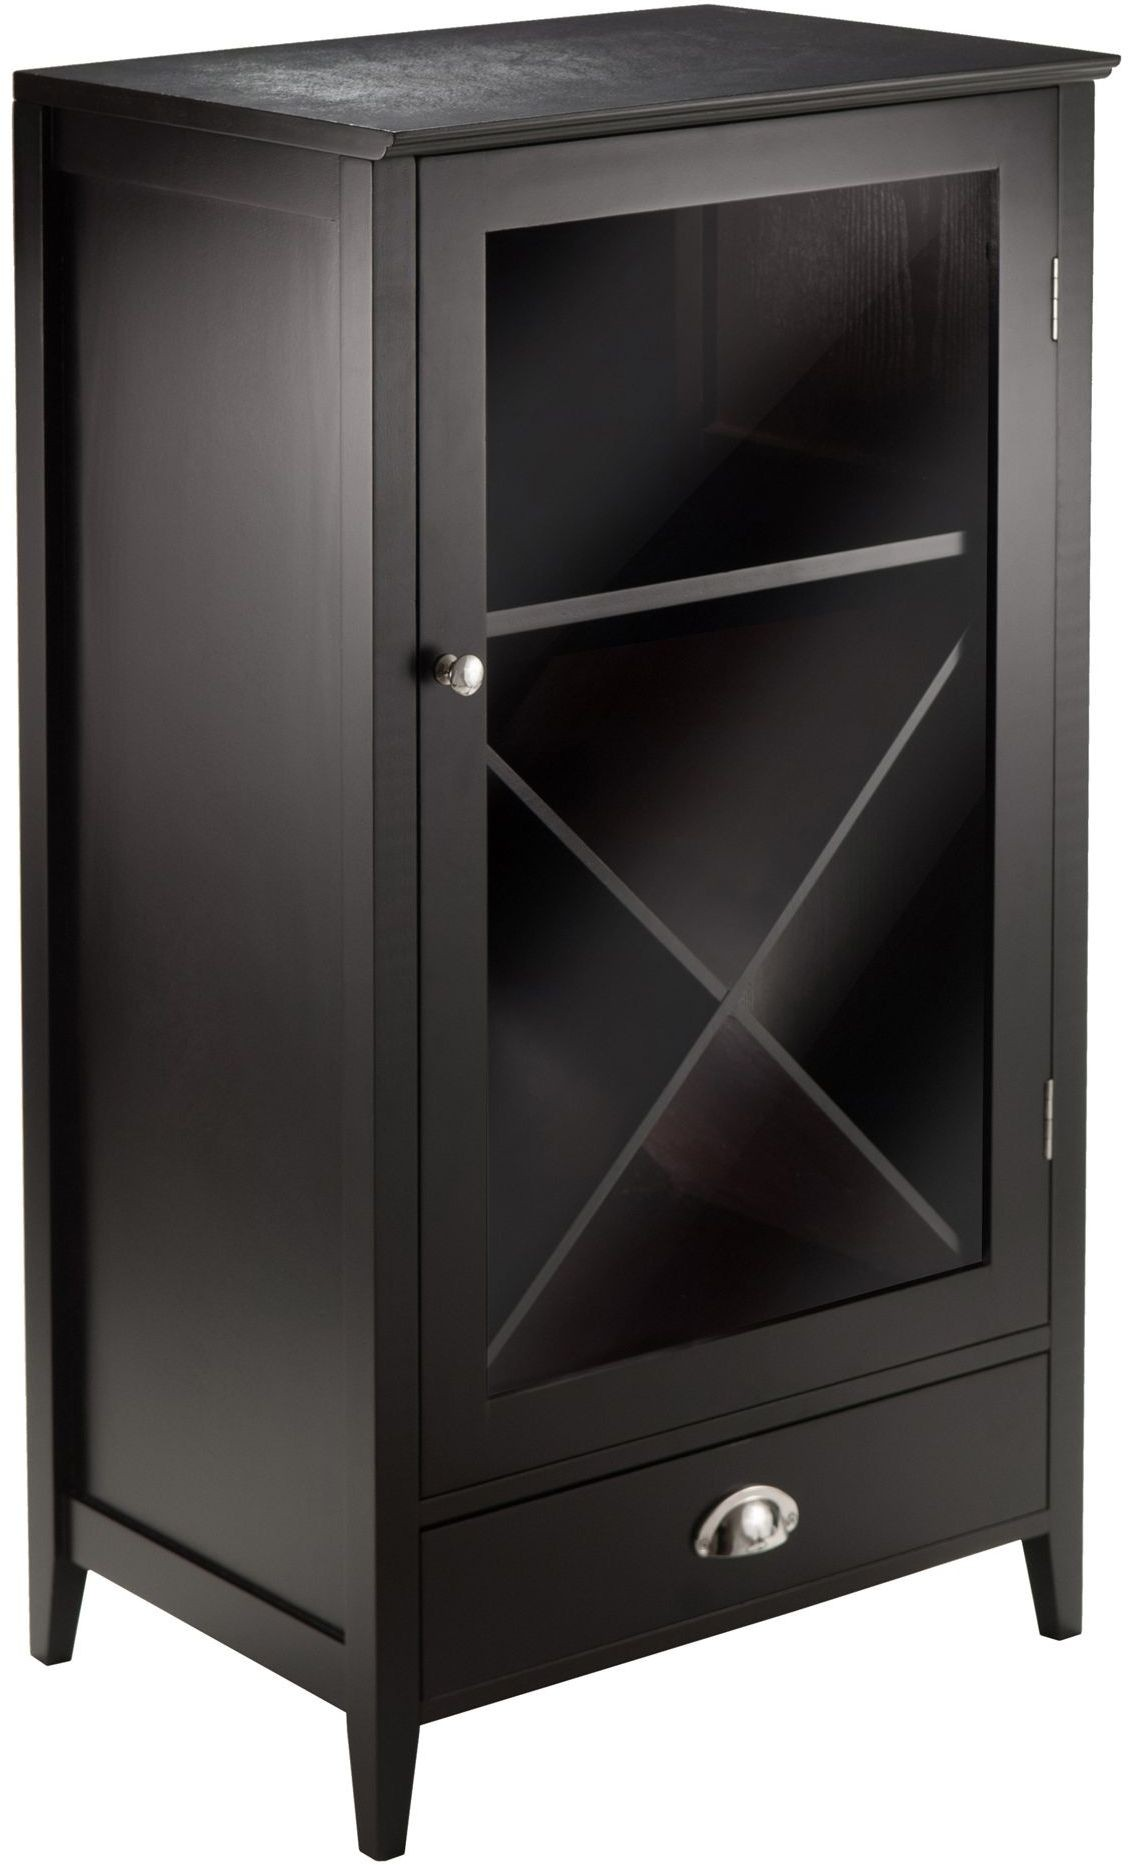 bordeaux espresso modular x wine cabinet from winsomewood coleman furniture. Black Bedroom Furniture Sets. Home Design Ideas